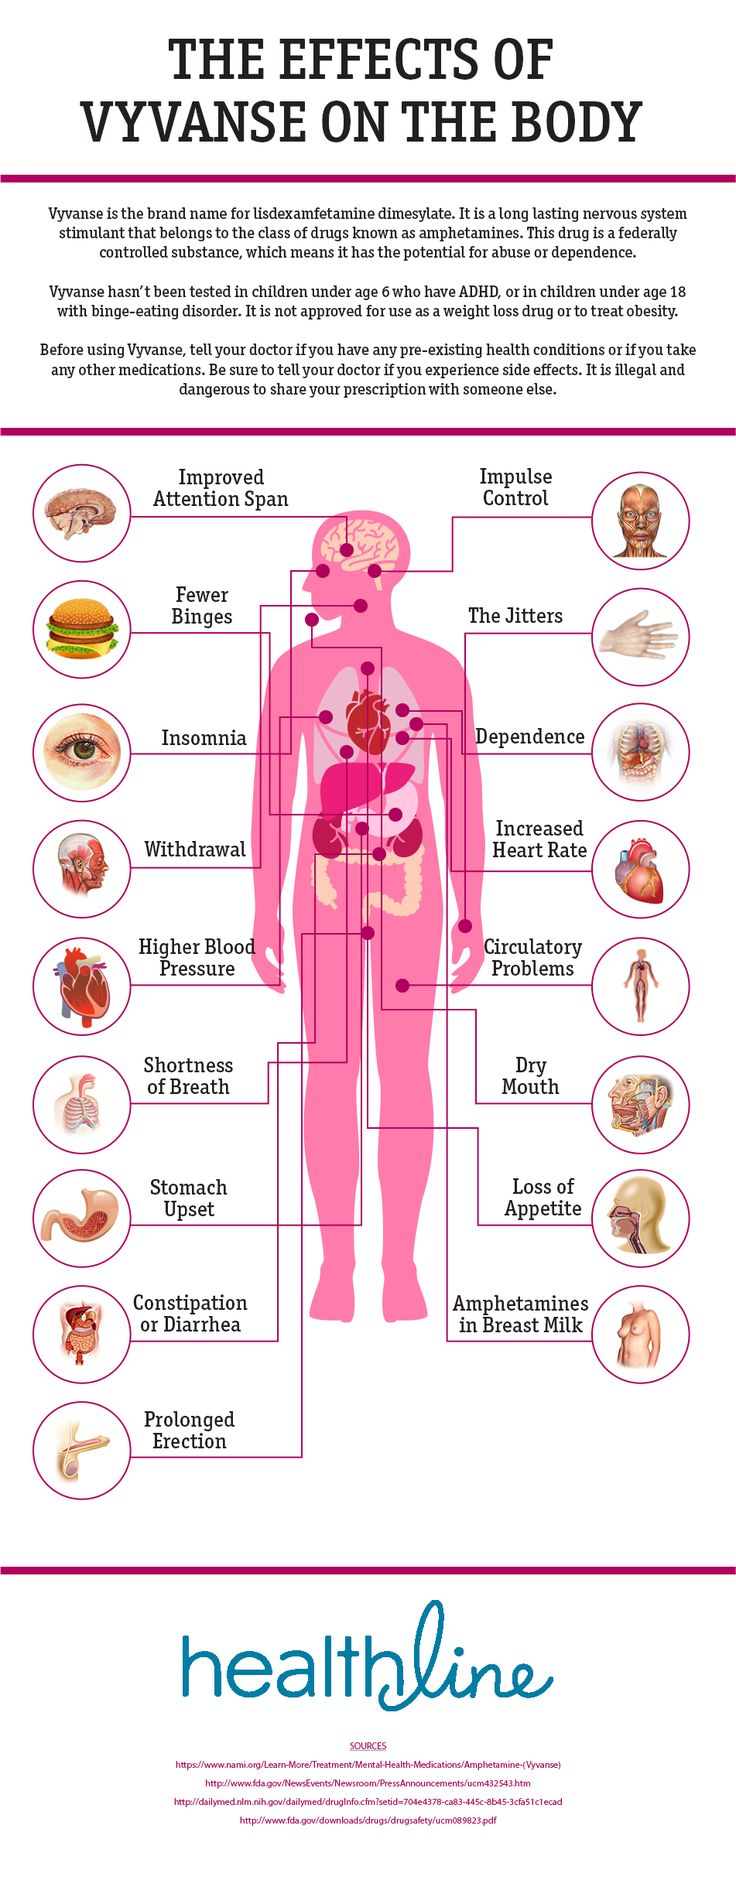 There are many side effects of taking Vyvanse. Find out more about the effects of Vyvanse on the body.